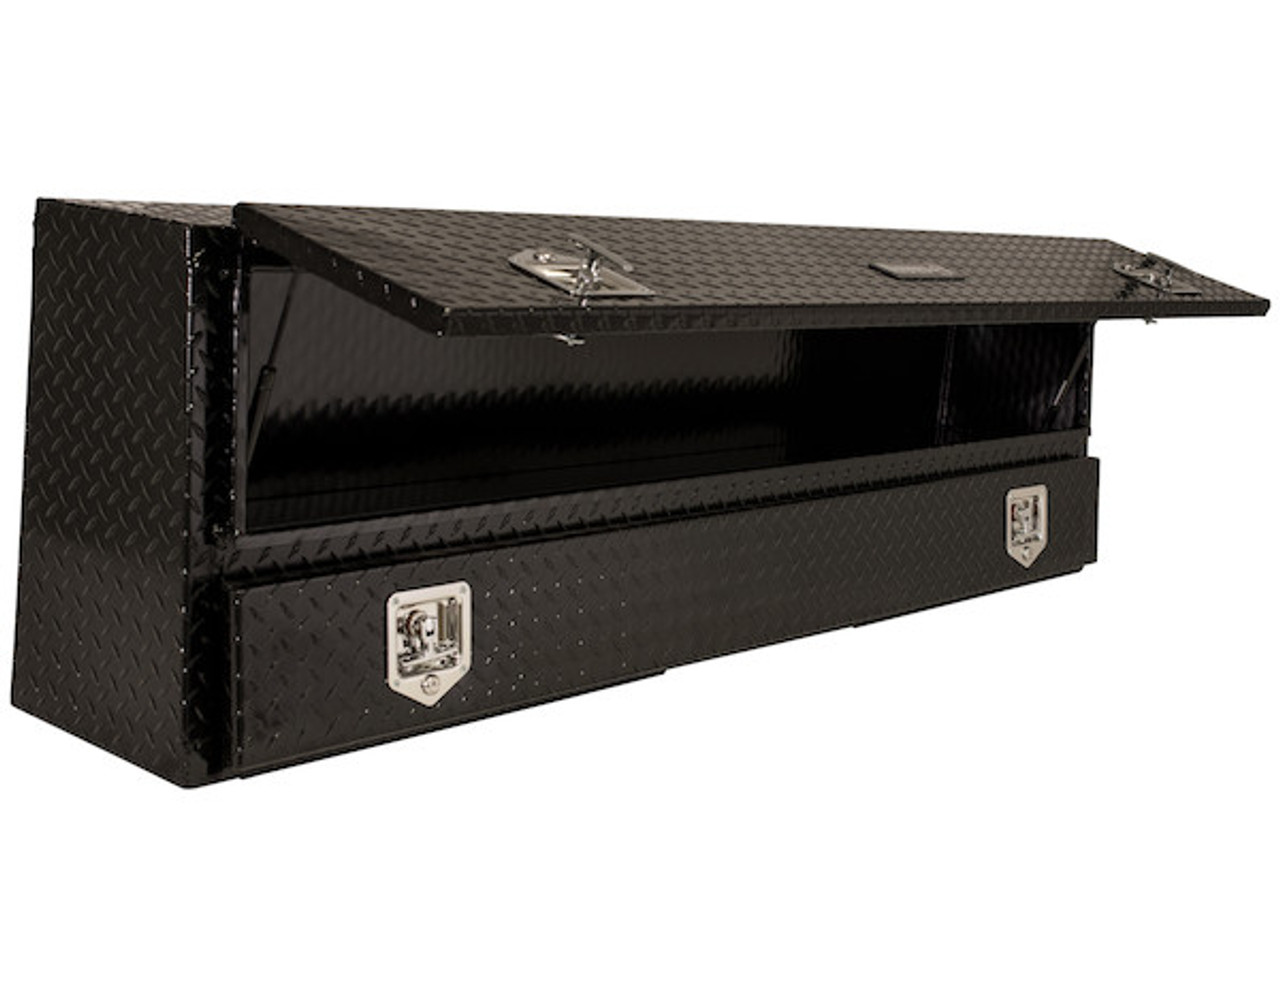 "1725640 BUYERS PRODUCTS BLACK DIAMOND TREAD ALUMINUM CONTRACTOR TRUCK TOOL BOX 21""HX13.5""DX72""W"